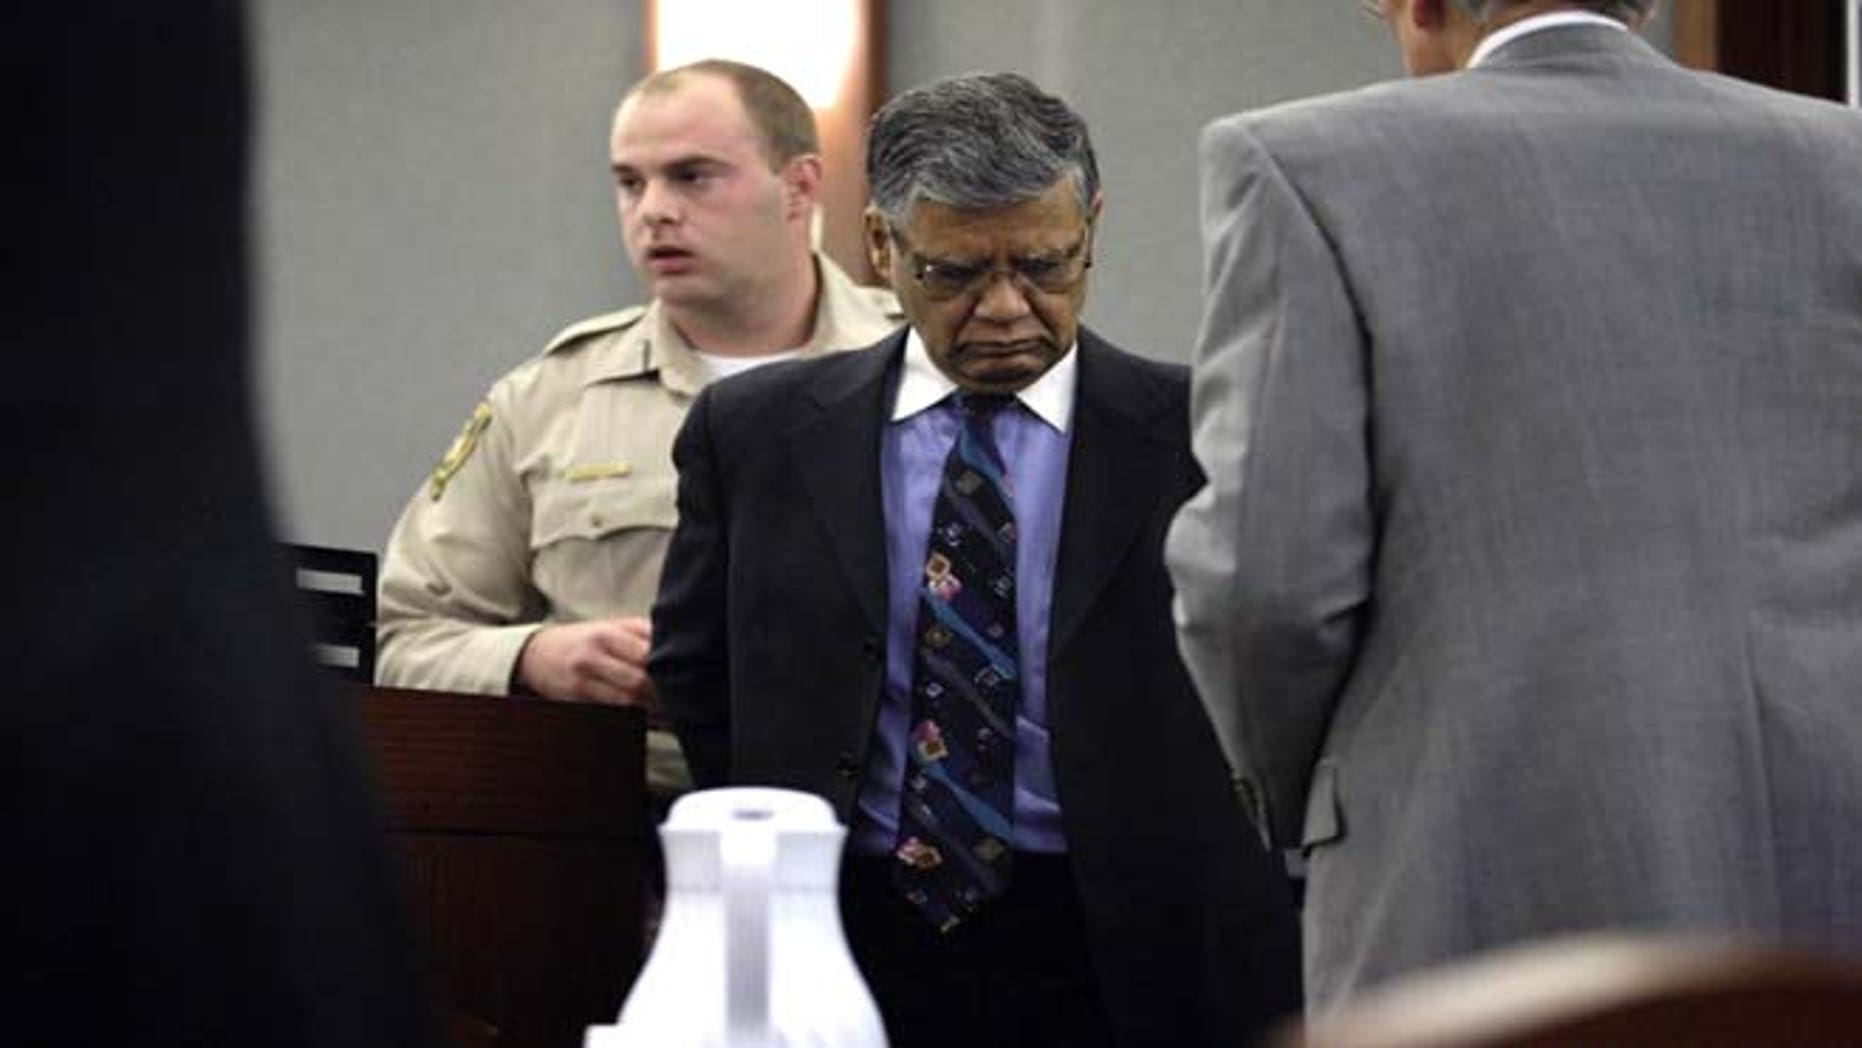 July 1, 2013: Former doctor and endoscopy clinic owner Dipak Desai right, is taken into custody by Clark County marshals at the Regional Justice Center in Las Vegas Monday, July 1, 2013 after a jury found him guilty. Nevada state court jury found Desai guilty of all 27 criminal charges against him— including second-degree murder — in a 2007 hepatitis C outbreak that officials called one of the largest ever in the U.S. (AP Photo/Las Vegas Review-Journal, Jessica Ebelhar)